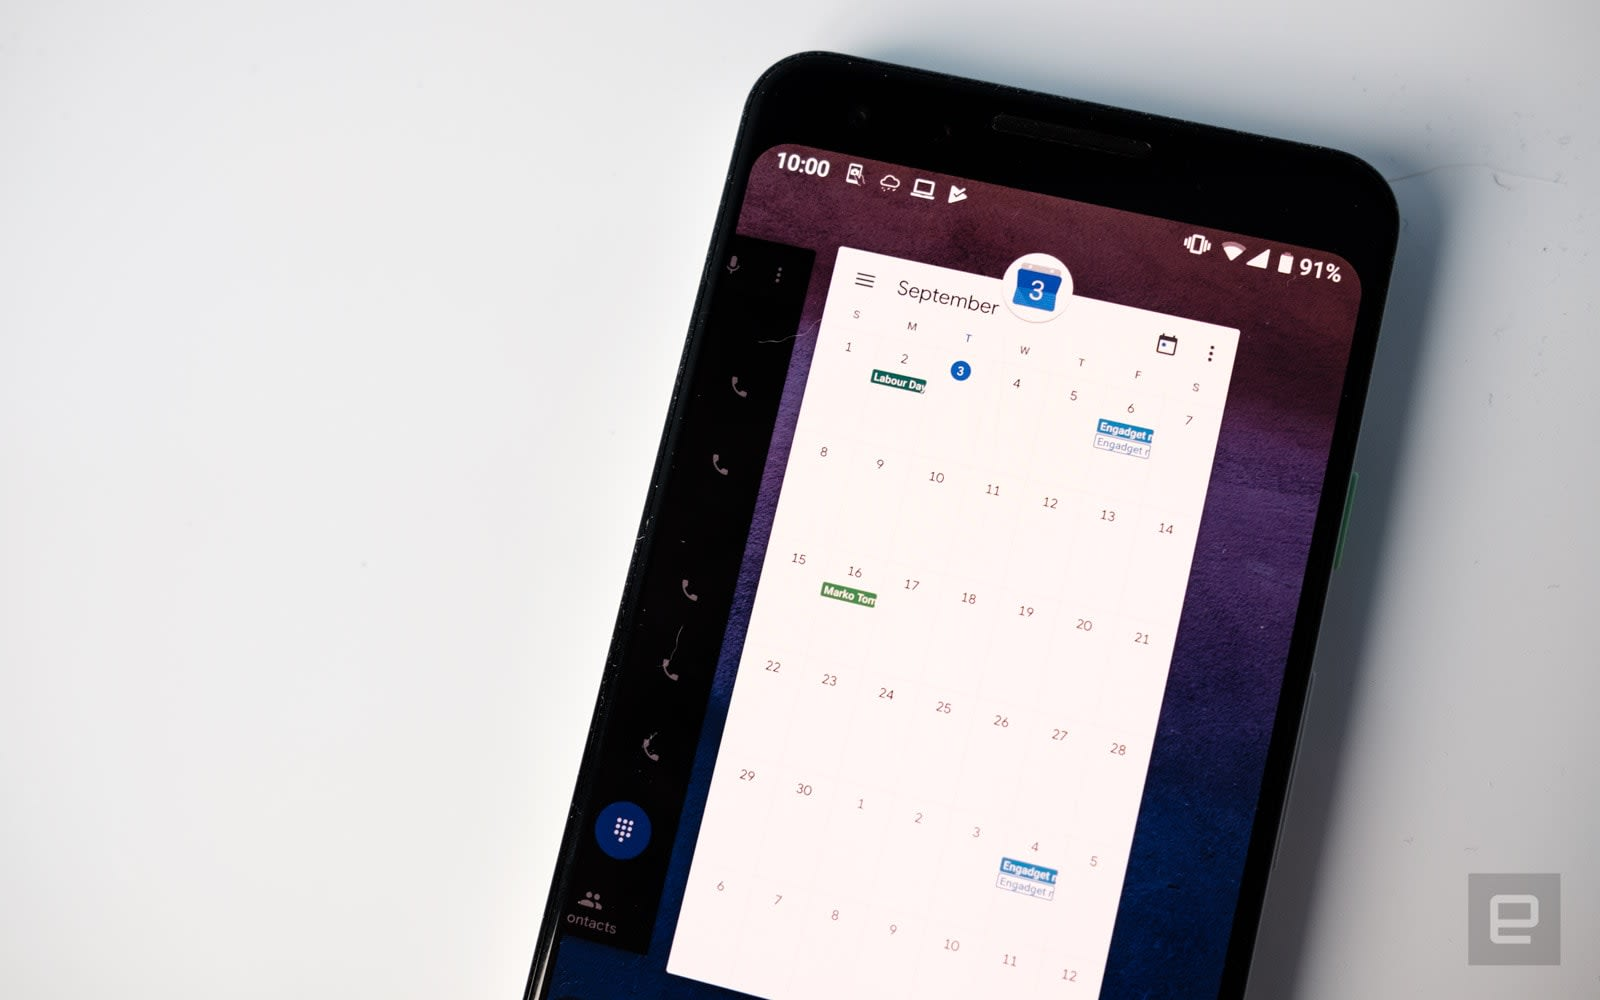 Google is working on a fix for malicious Calendar spam